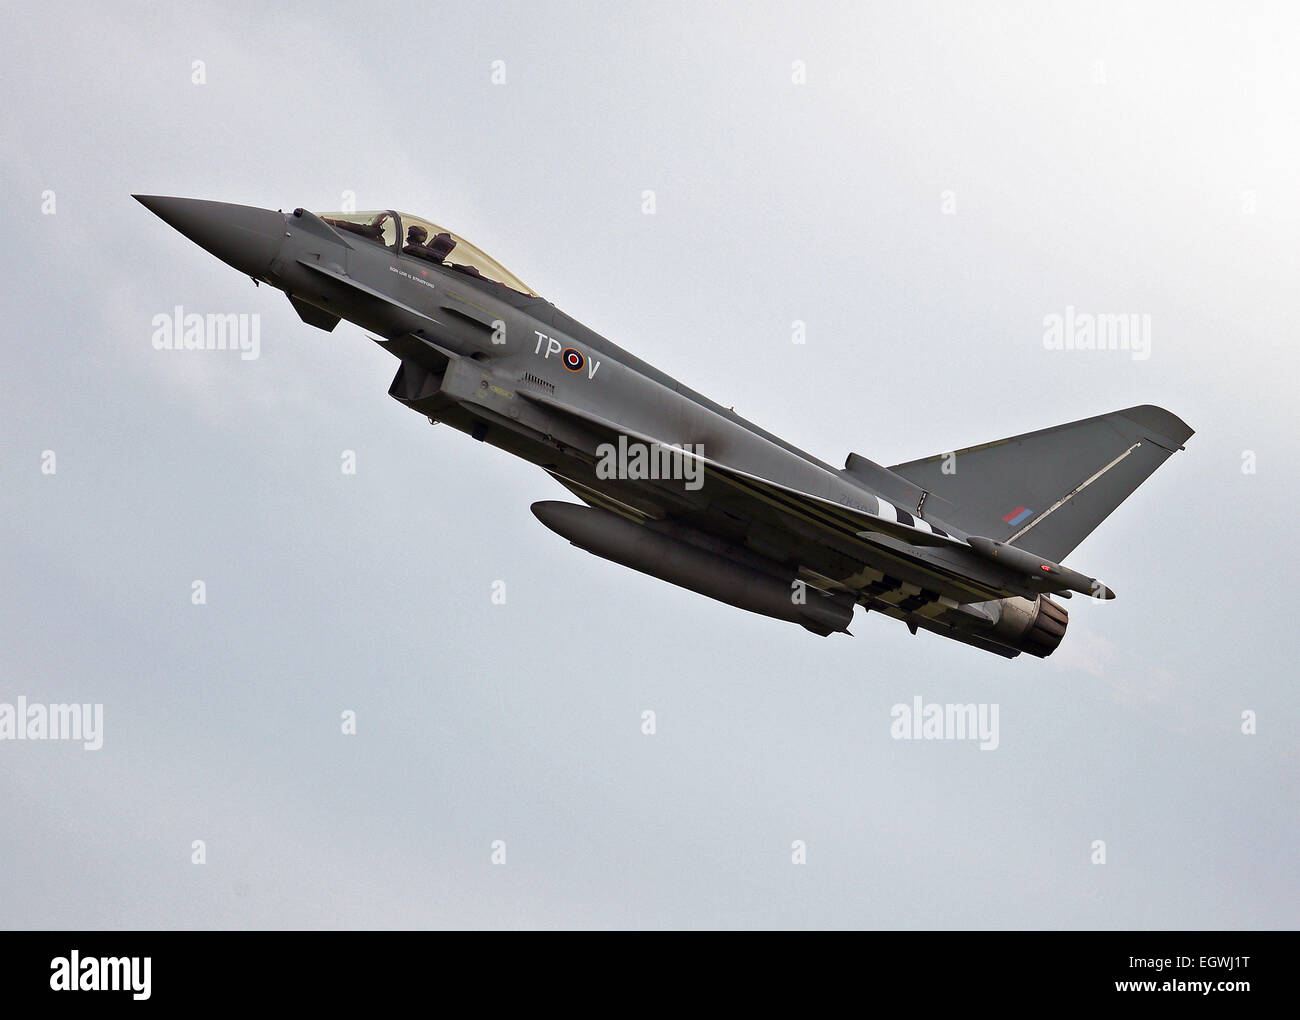 RAF FGR4 Eurofighter Typhoon D-Day Special Markings - Stock Image